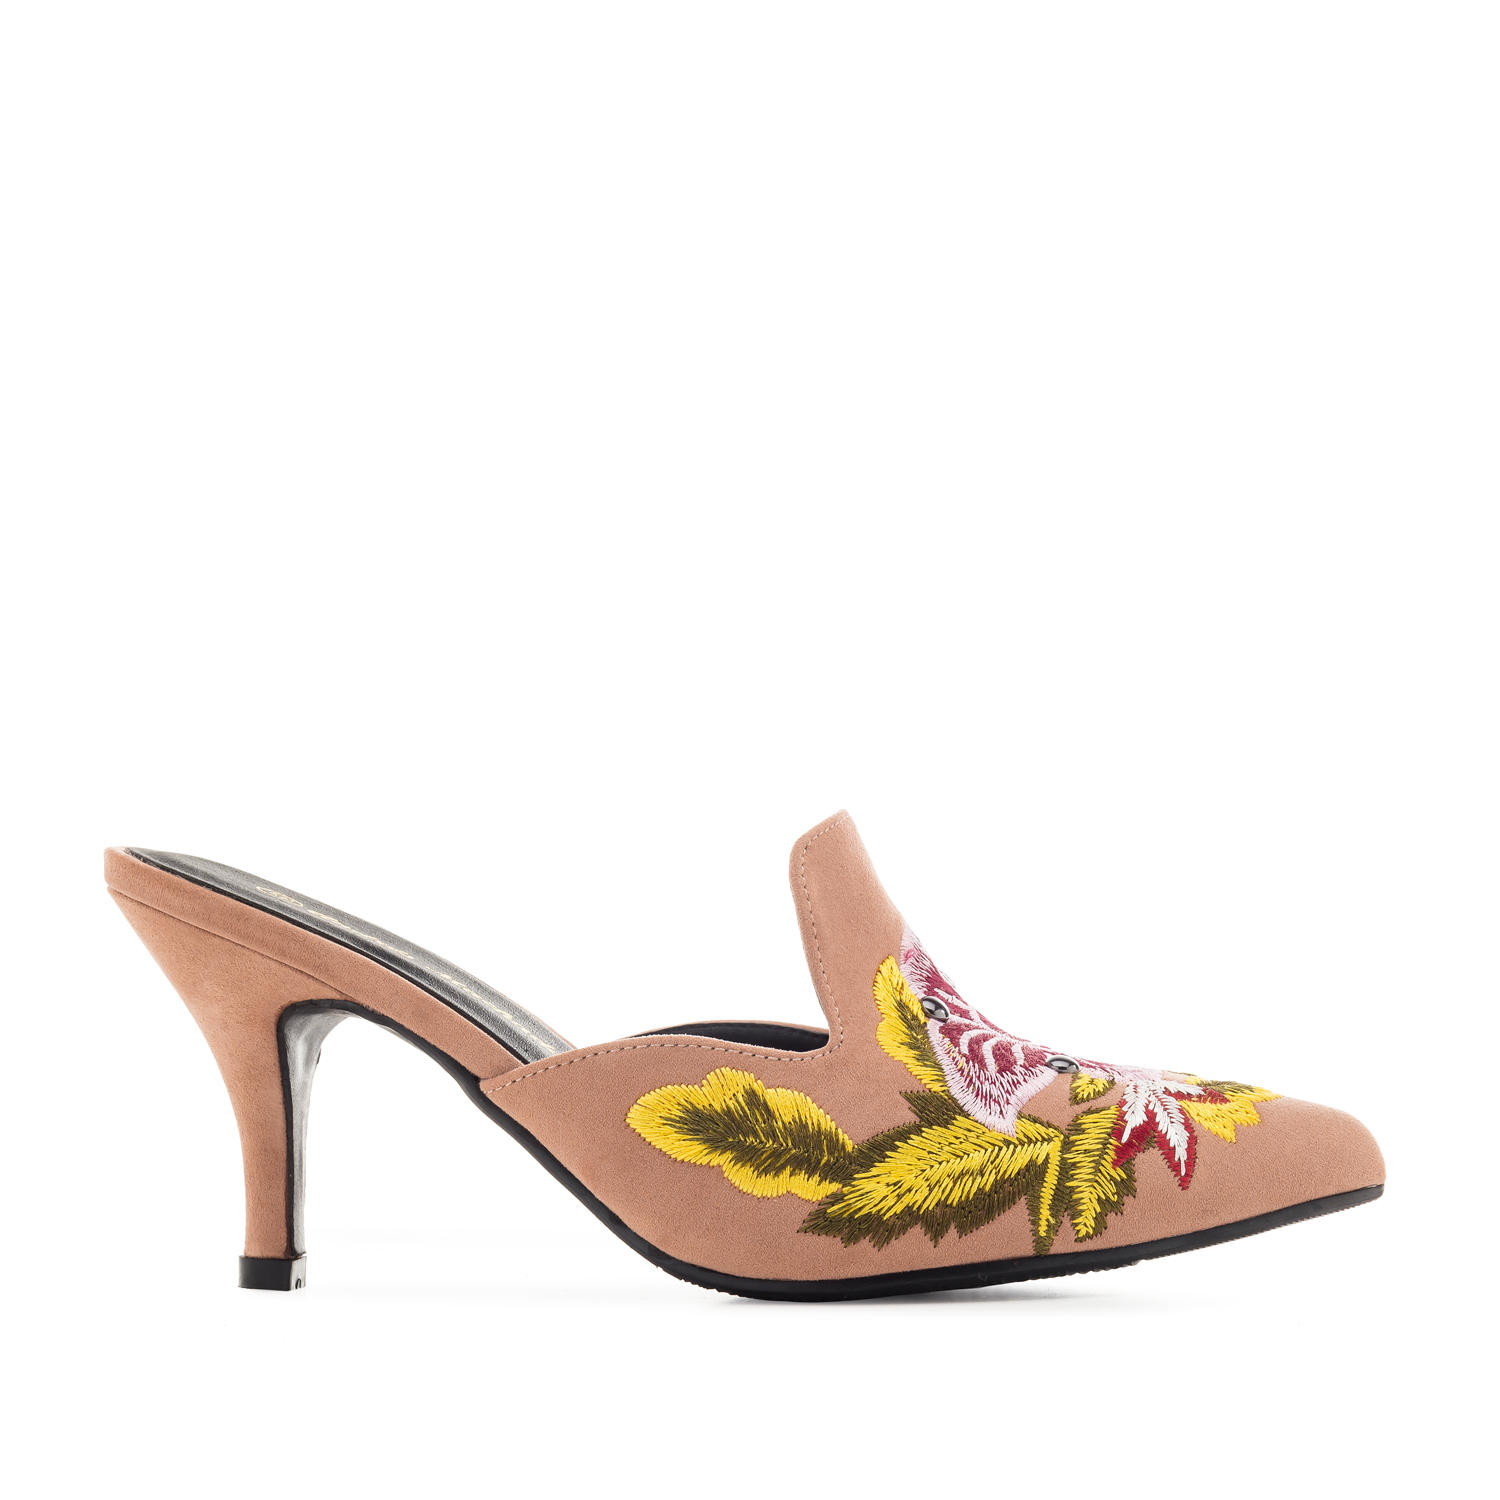 Embroidered Mules in Salmon-coloured Suede